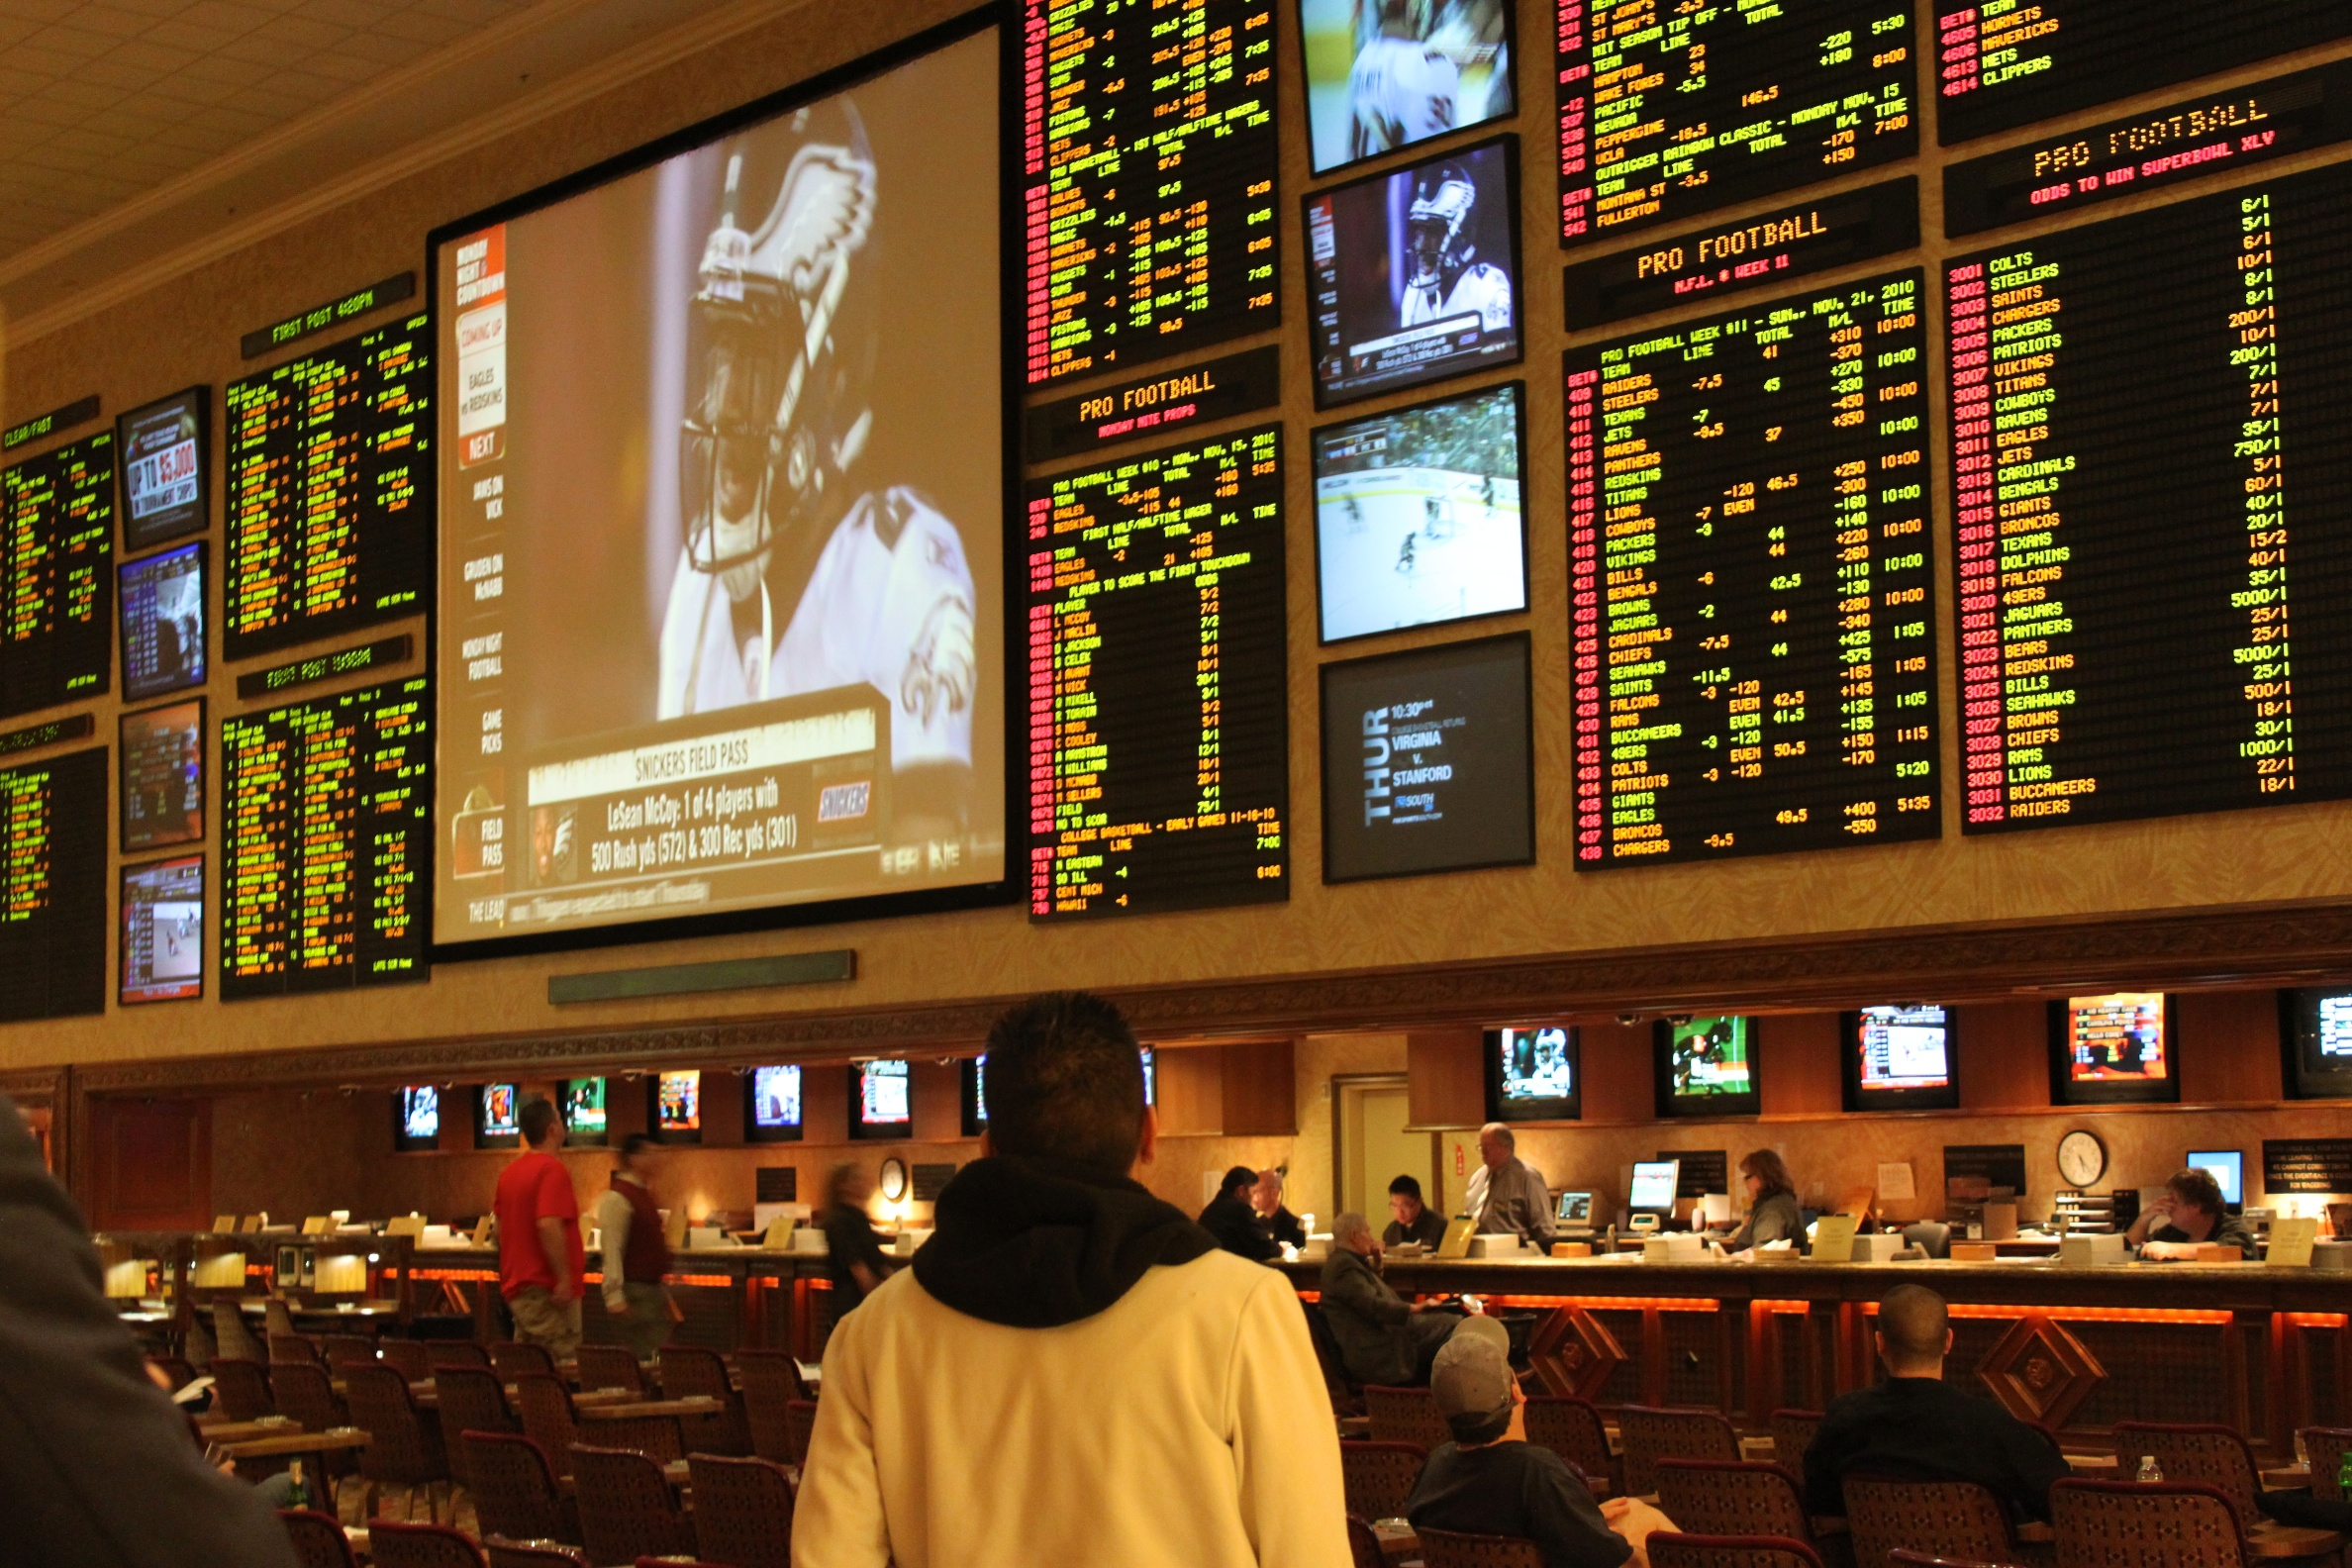 books supporting sports betting